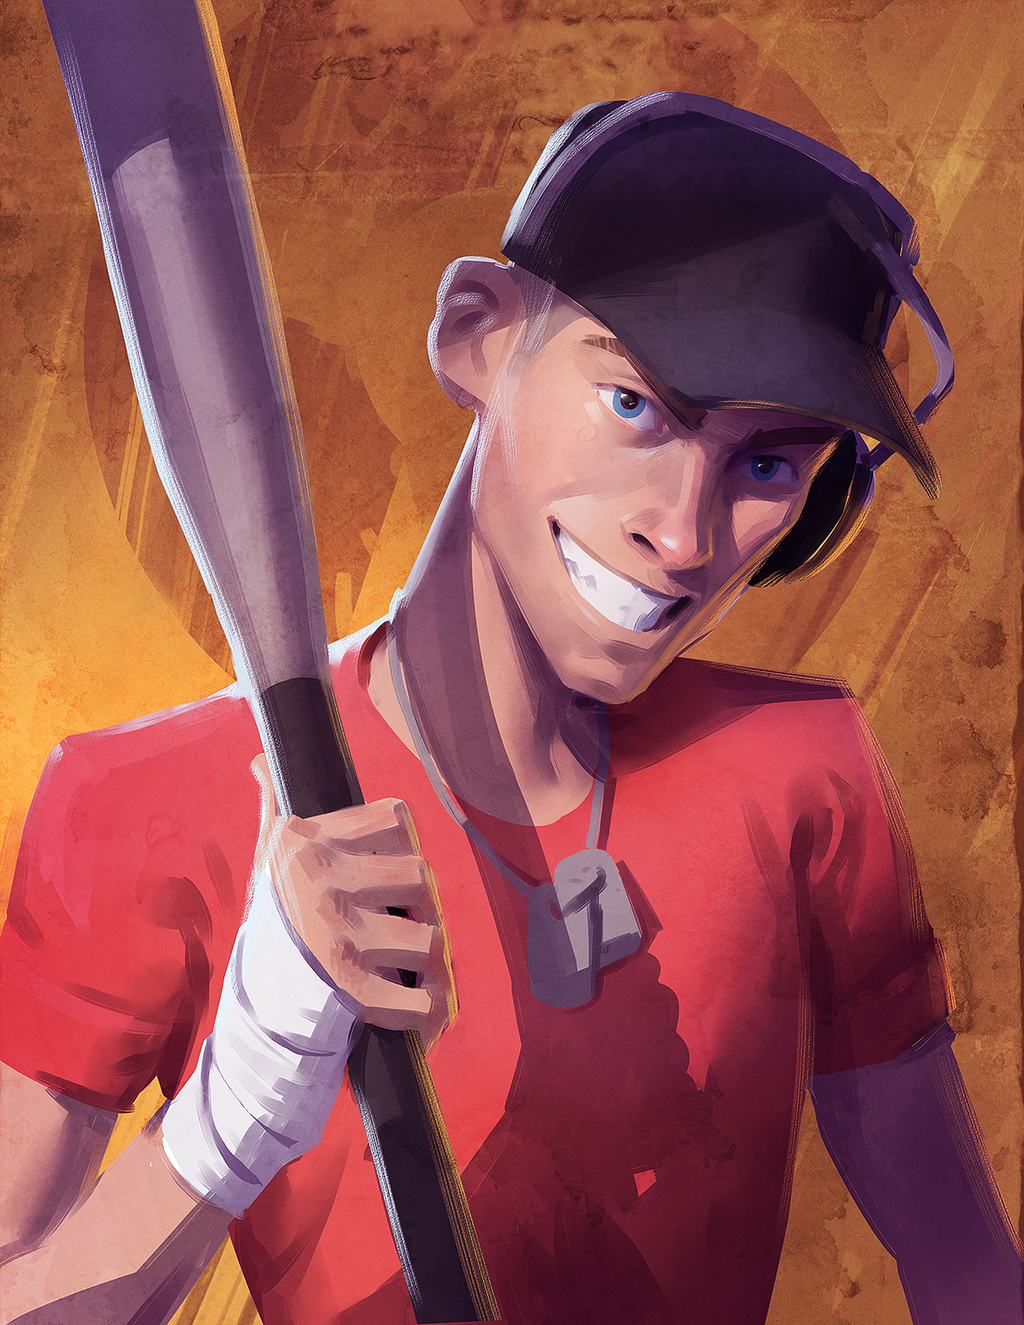 tf2_scout_by_makkon-d7tc1jn.png